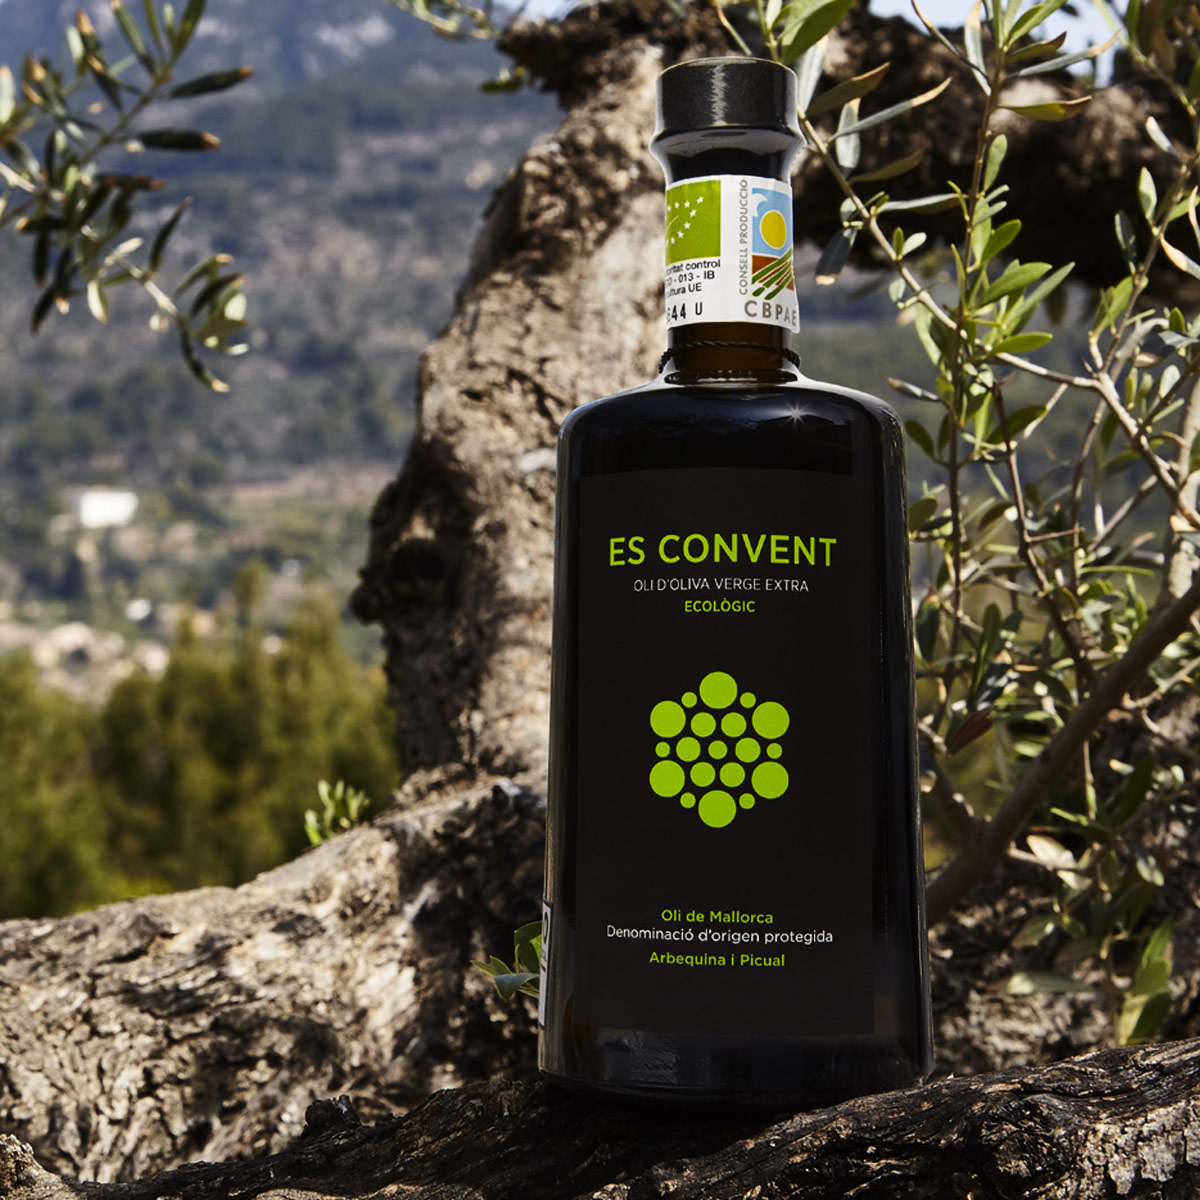 6 x Es Convent, Huile d'olive vierge extra D.O.